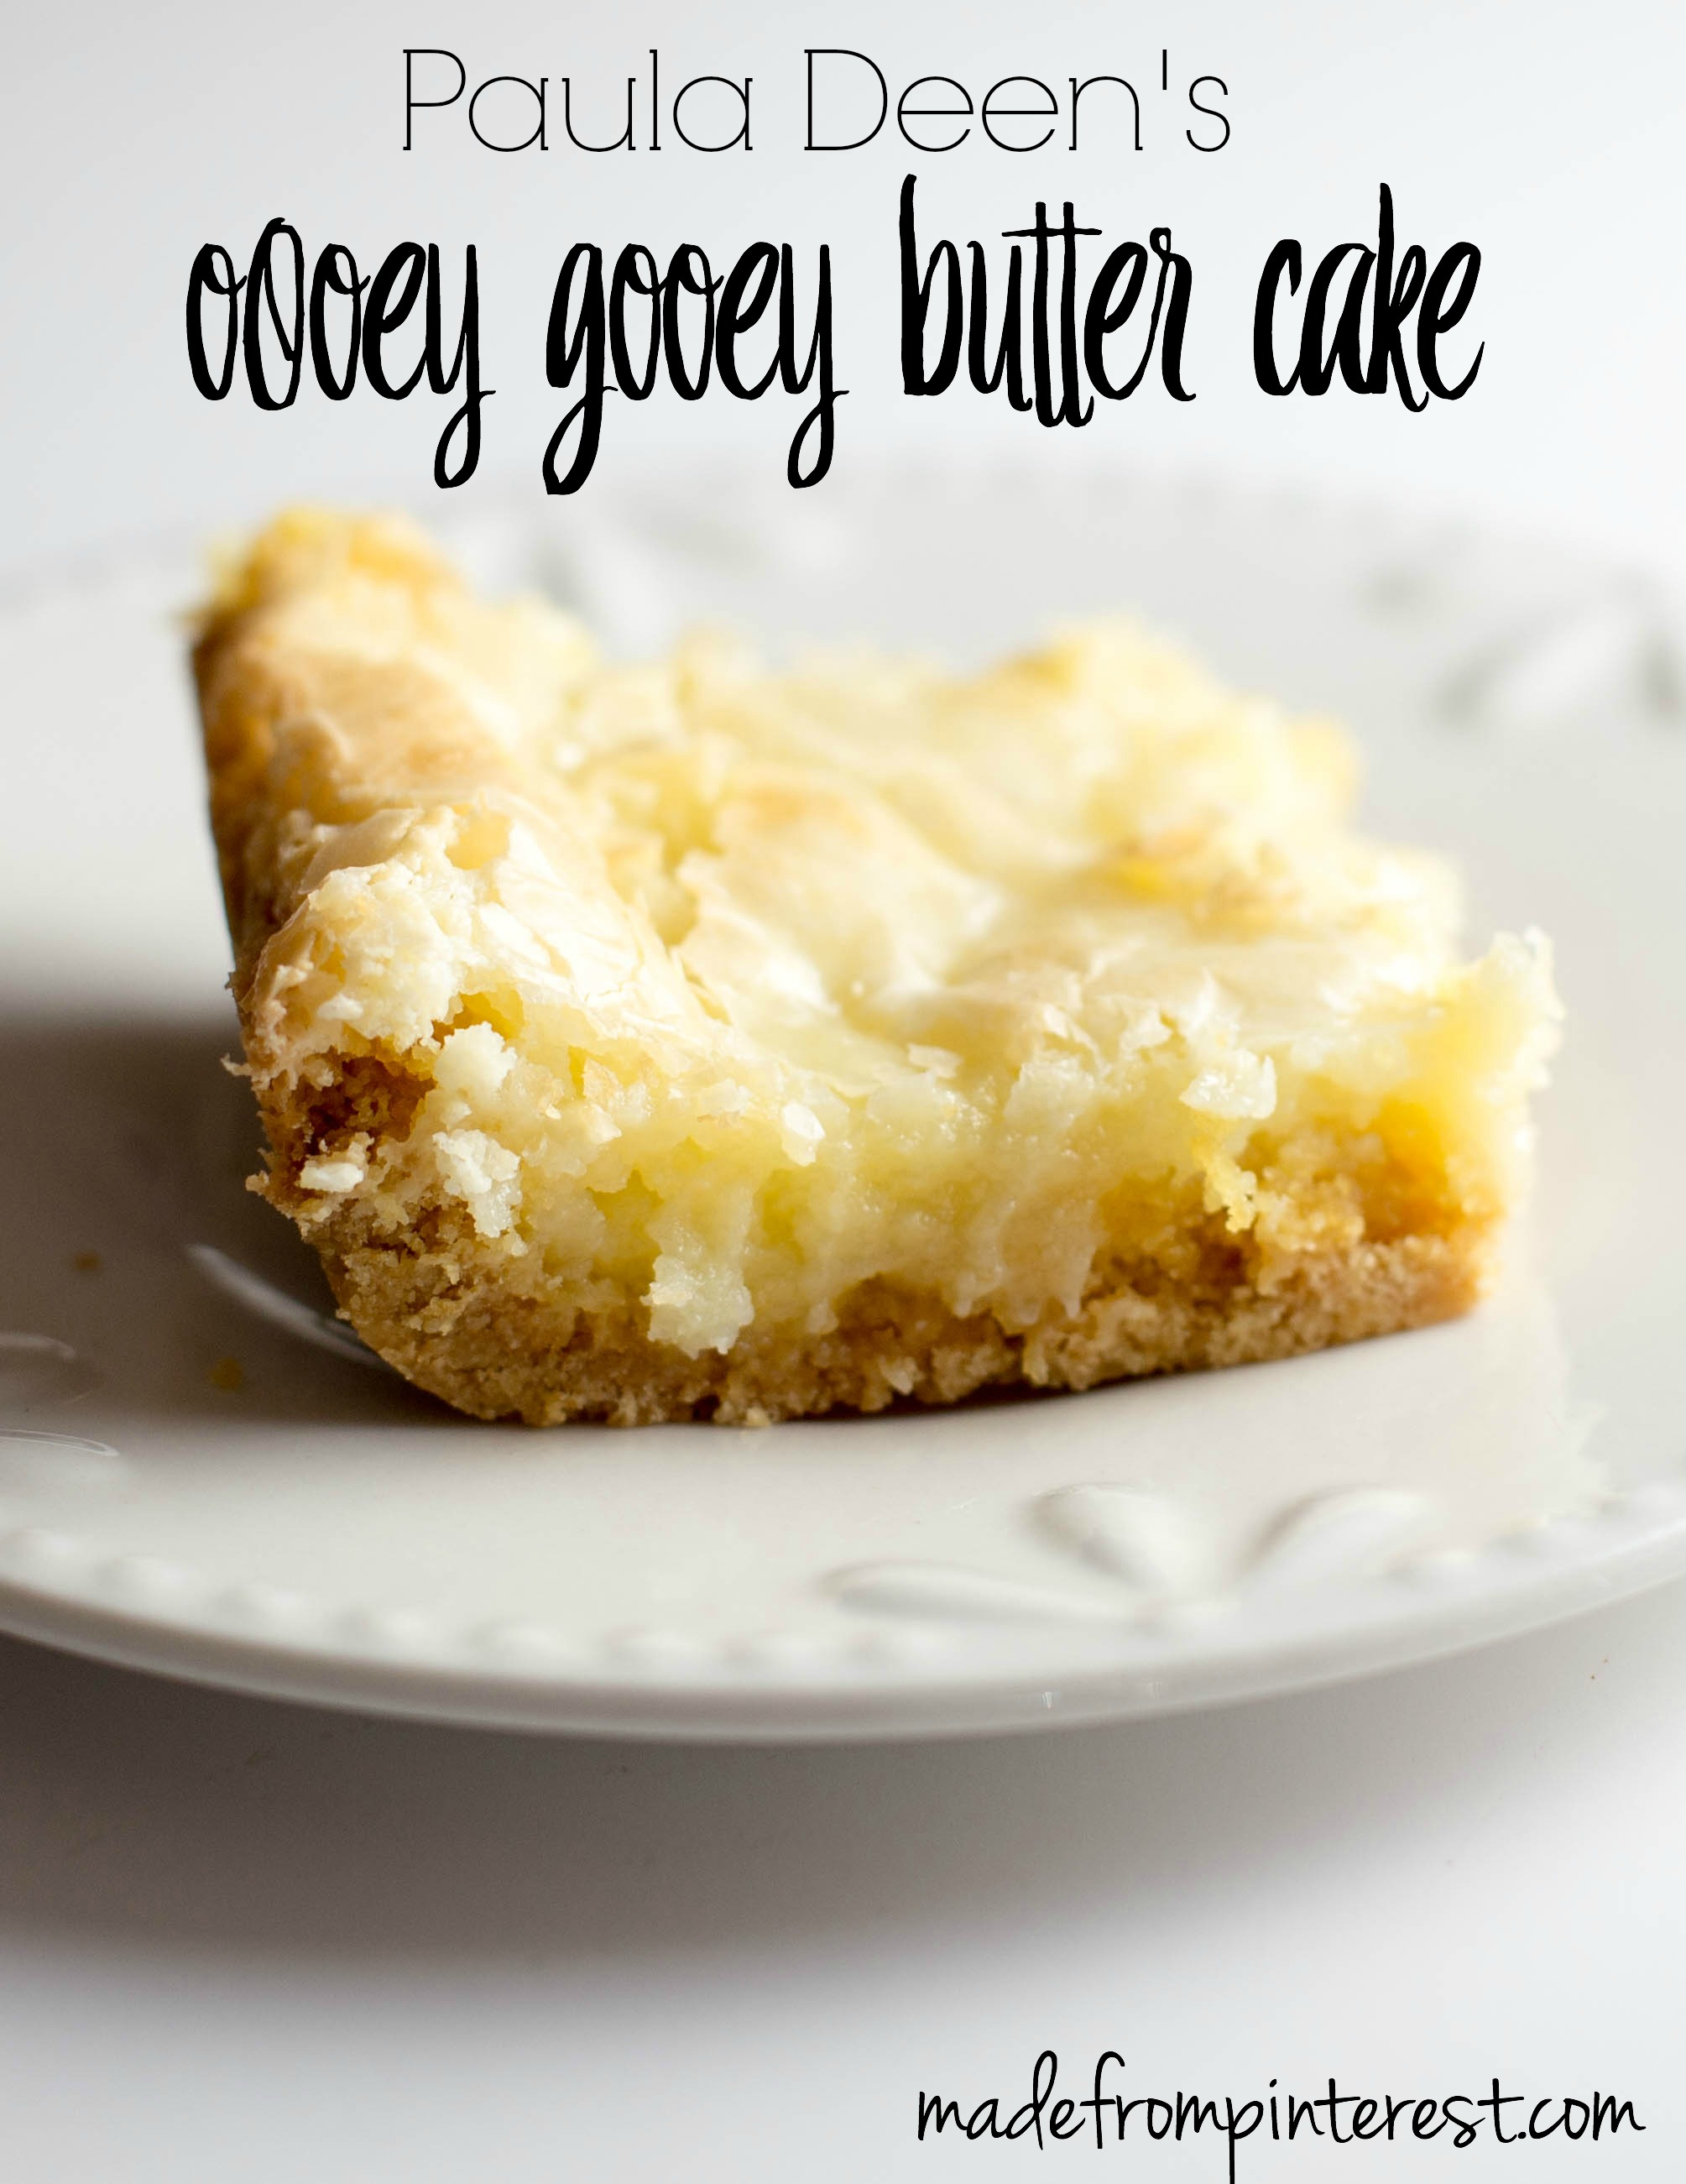 Recipes for gooey butter cake from scratch